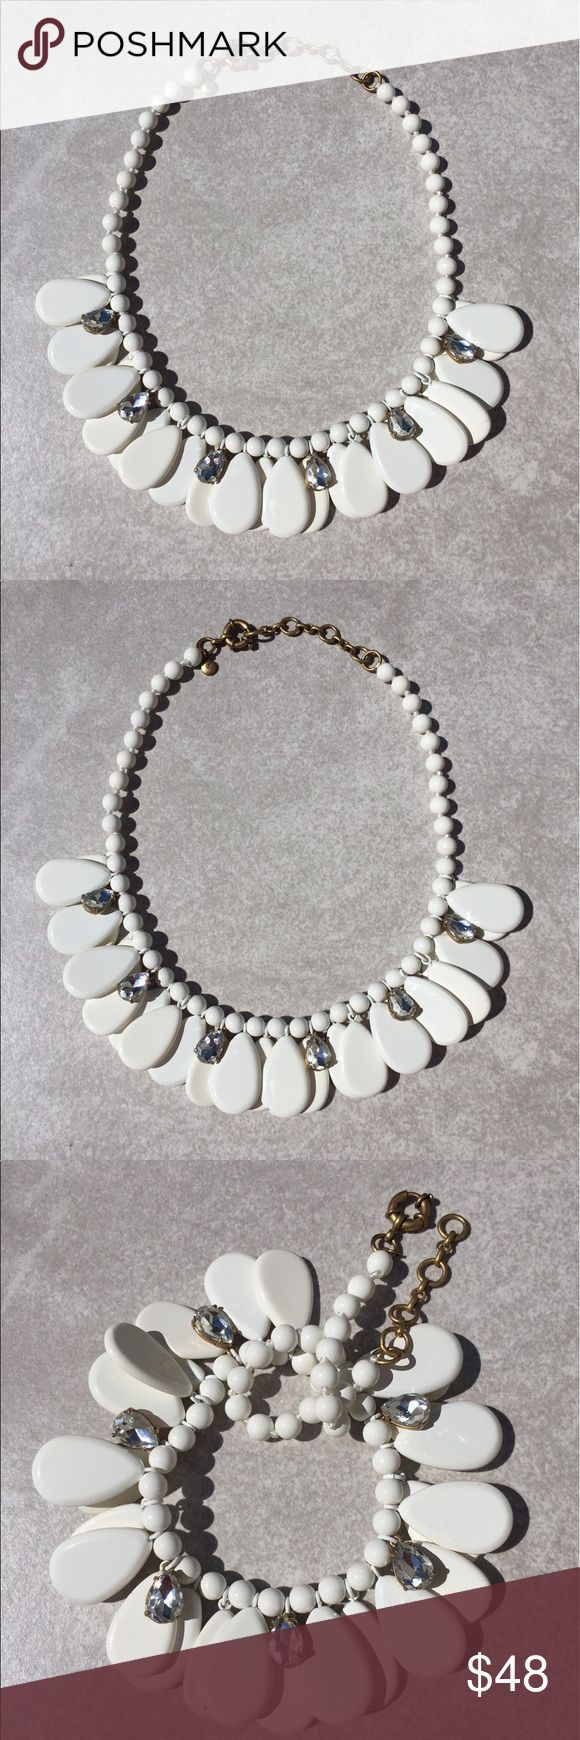 J Crew Necklace J Crew Statement Necklace - white ceramic look petals dangle with clear faceted teardrop shaped crystals draped intermittently in between.  Perfect for Spring and Summer.  Wear with a white tee and jeans 👖 or white linen and heels.  Very pretty!  Tiny tiny nick on one in of the petals (see pics) not noticeable ( just letting you know).  This is not a J Crew Outlet item.  Purchased in J Crew store from under the glass and worn once. J. Crew Jewelry Necklaces